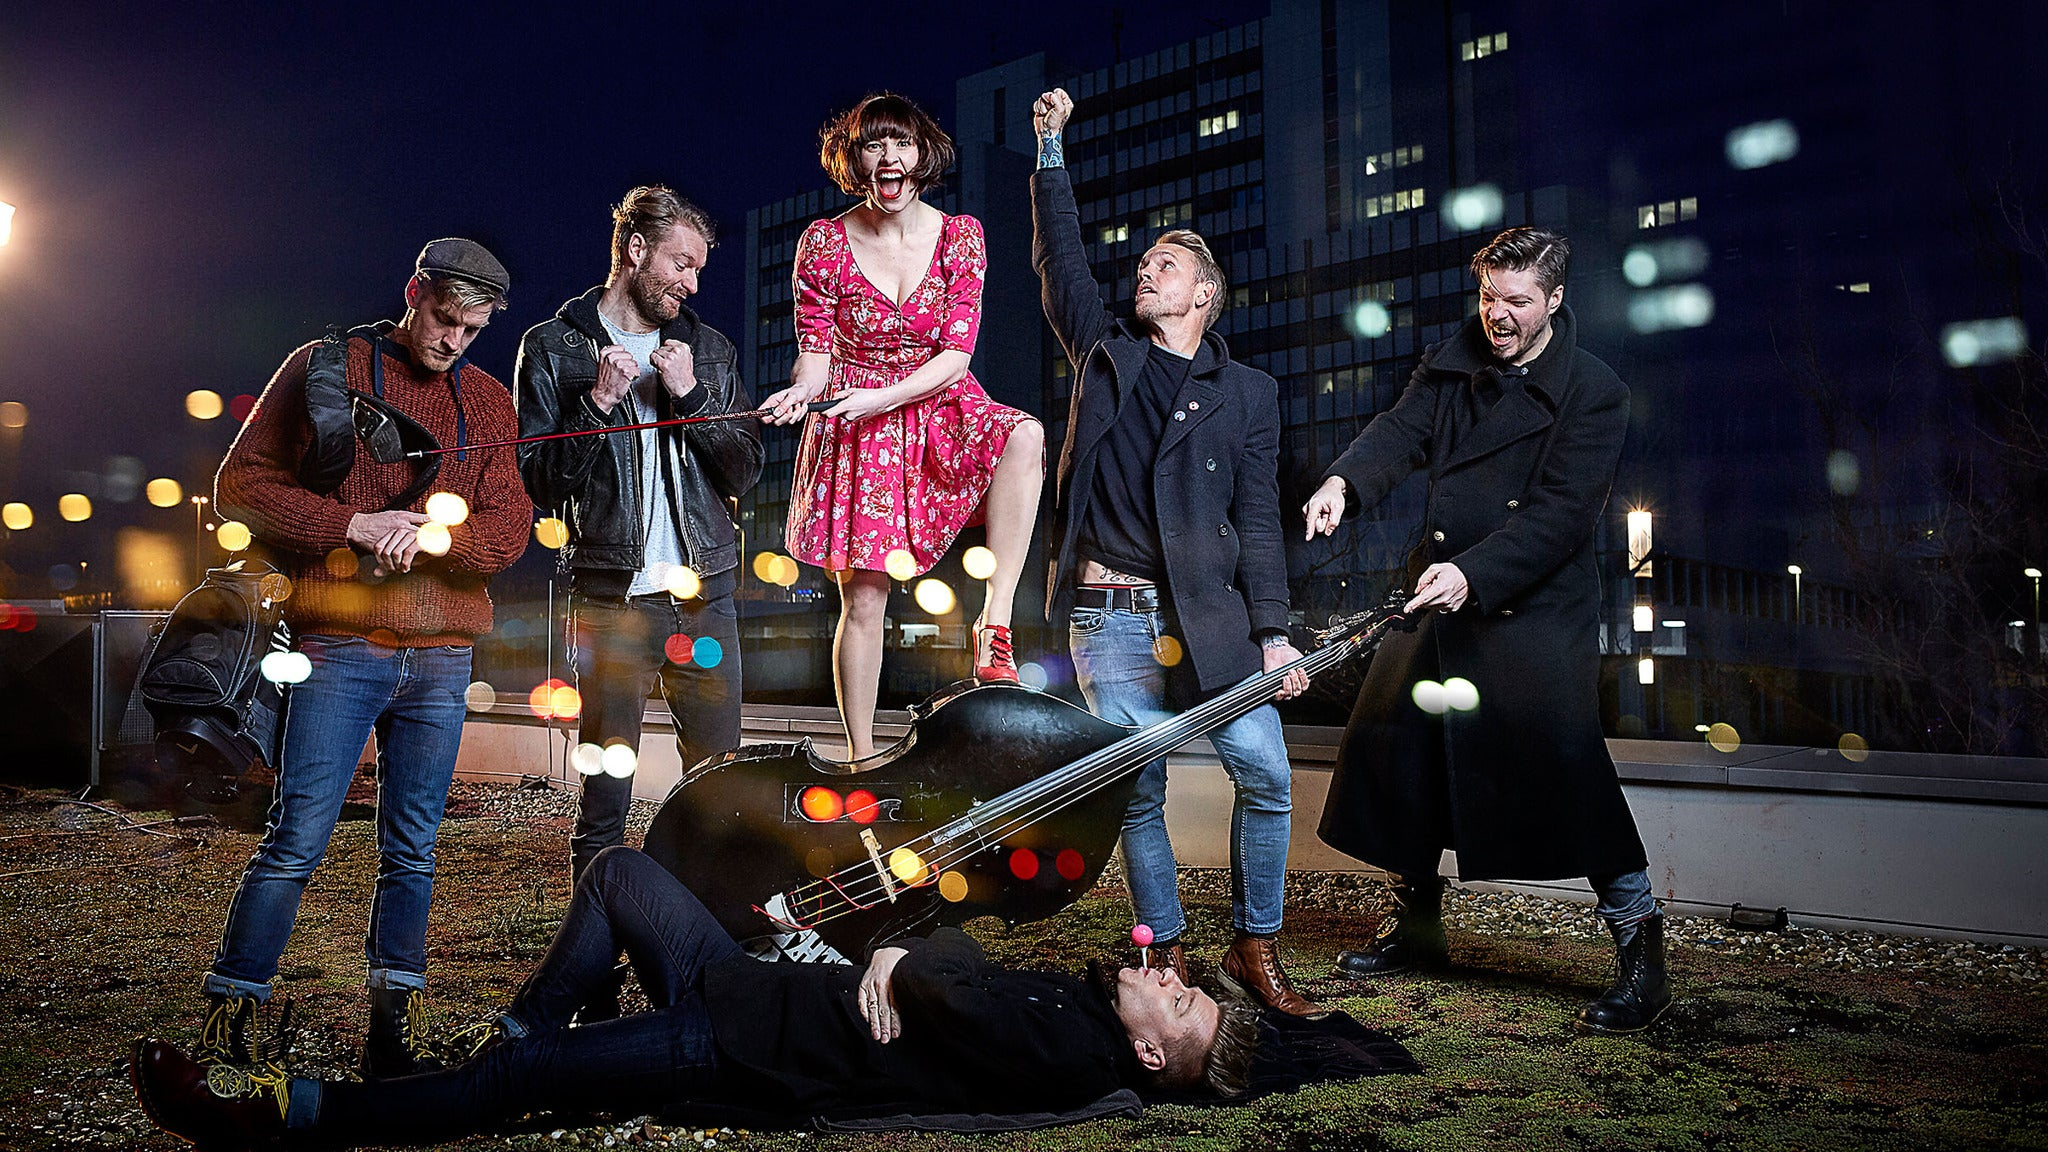 Skinny Lister plus Trapper Schoepp plus $pawn$